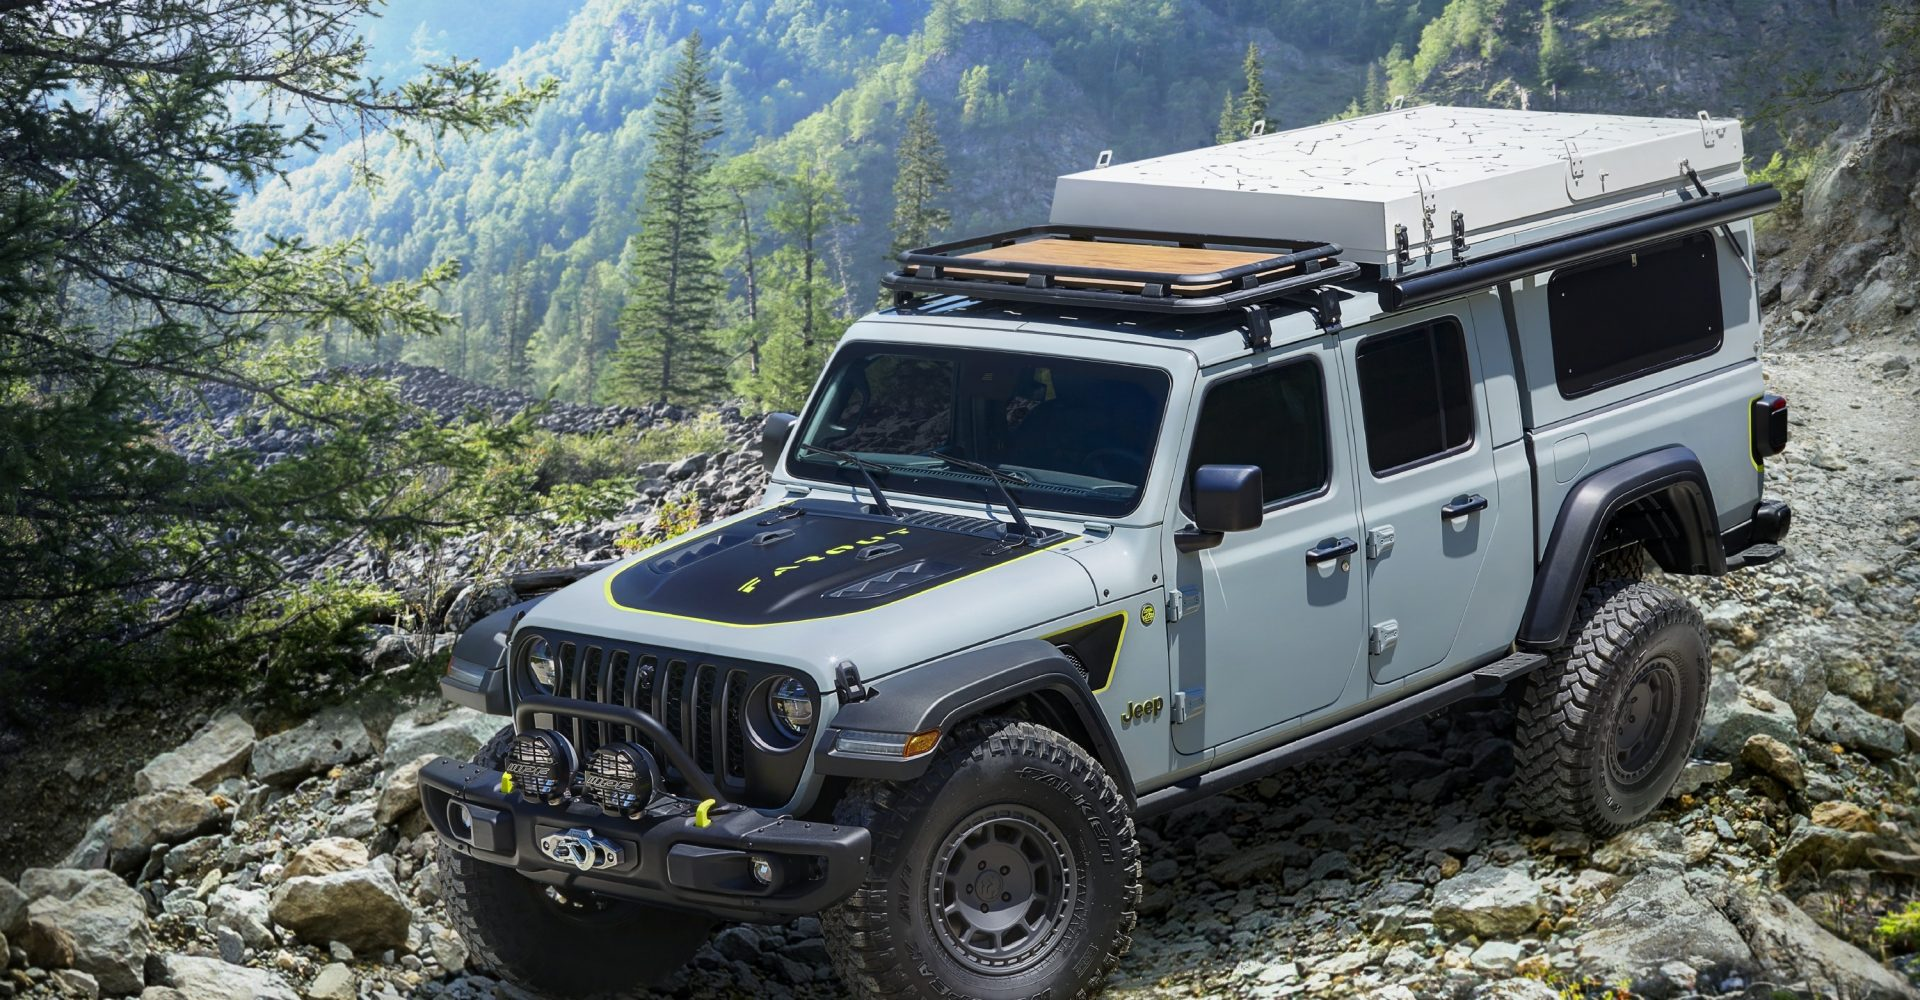 Jeep releases adventure-ready Gladiator Farout concept